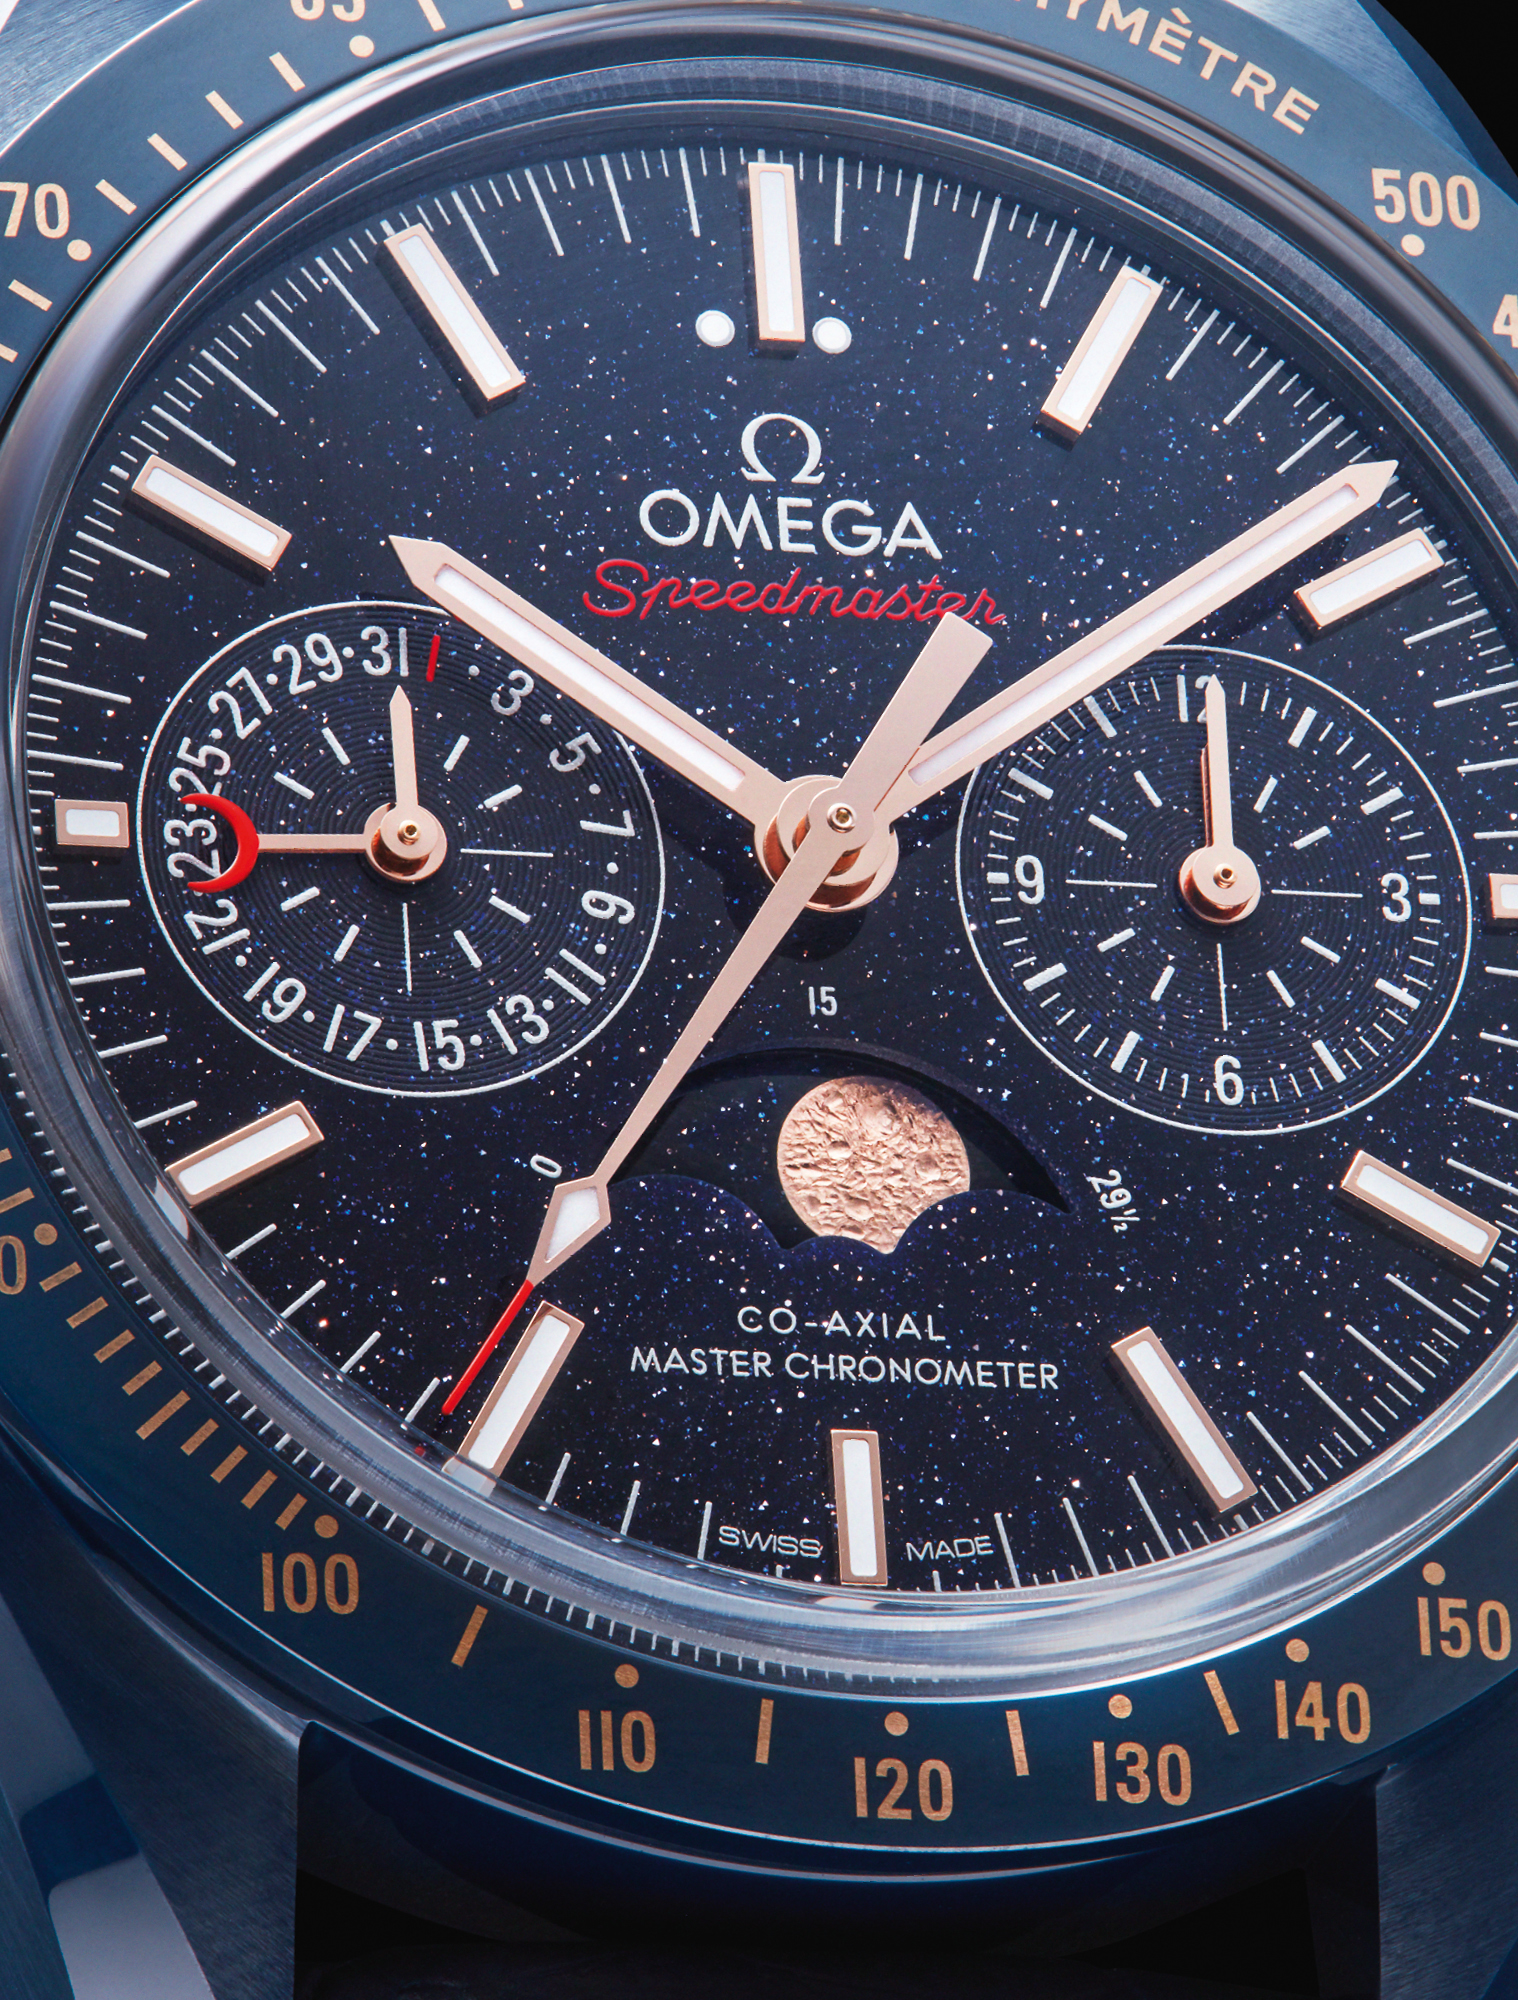 mega's 44.25mm Speedmaster Moonwatch 'Blue Side of the Moon' is a Master Chronometer Moonphase Chronograph featuring a blue aventurine glass dial and blue ceramic case complemented by a blue ceramic bezel ring. £11,040, OMEGA